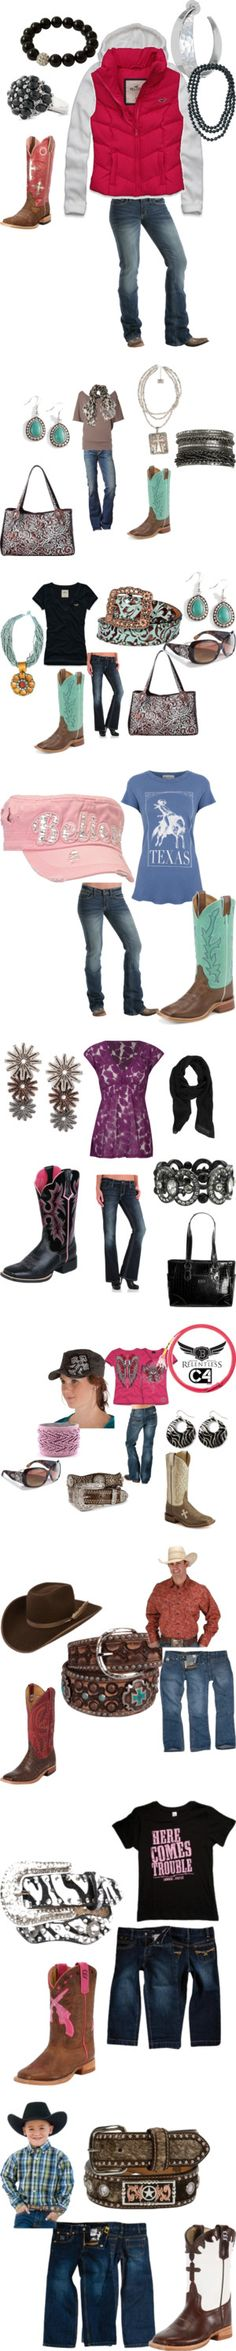 """""""My Cowgirl Life"""" by rodeorosecowgirlboutique on Polyvore"""